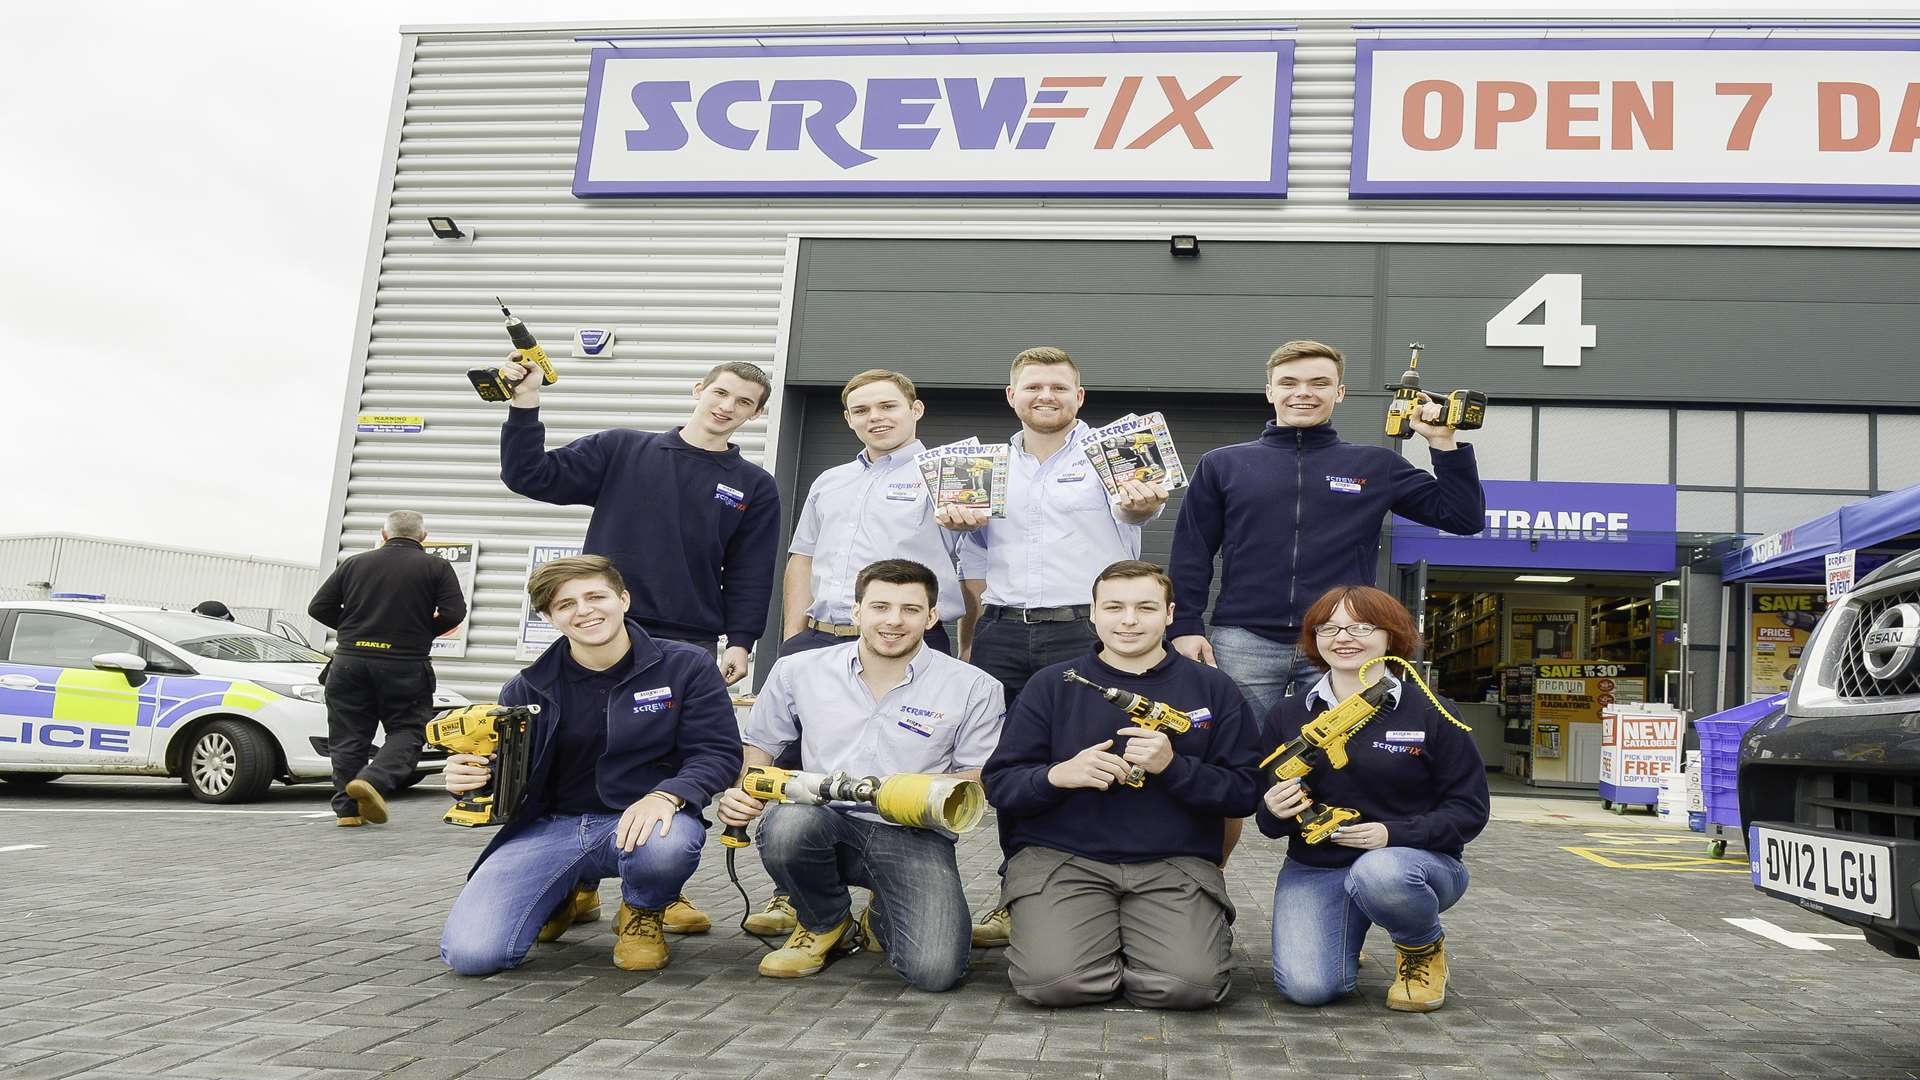 Staff from the new Screwfix store